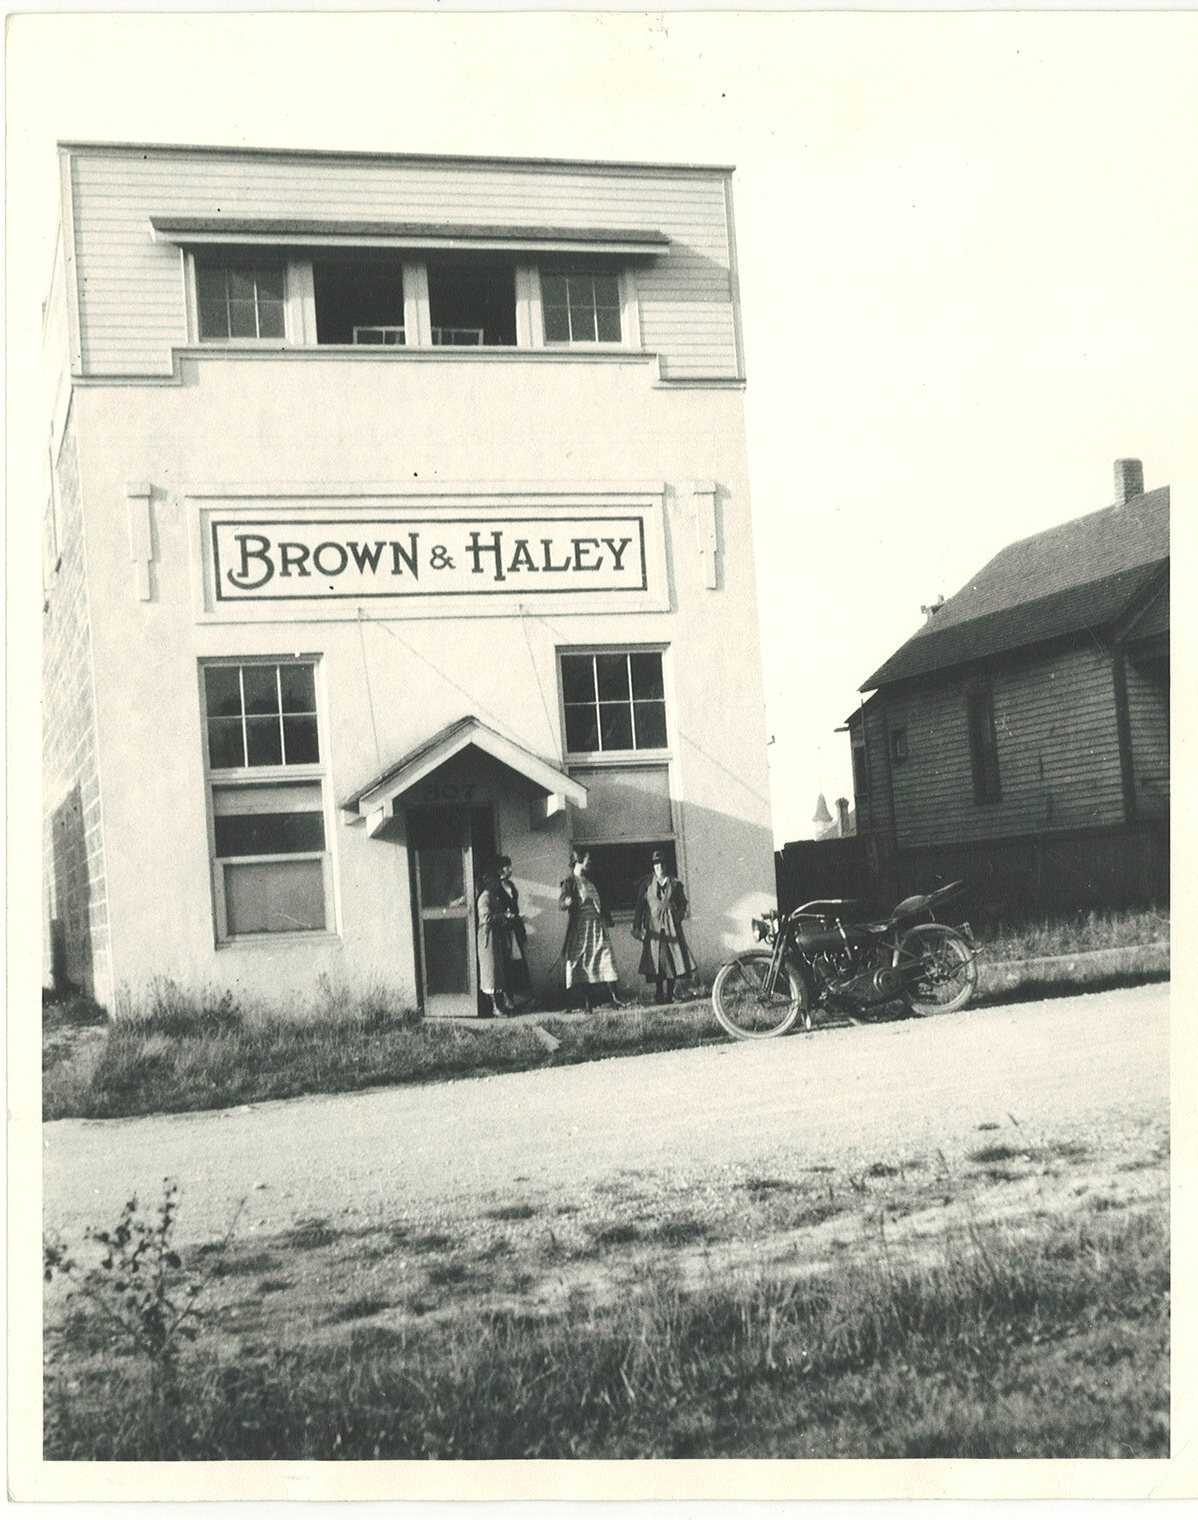 BROWN & HALEY FACTORY